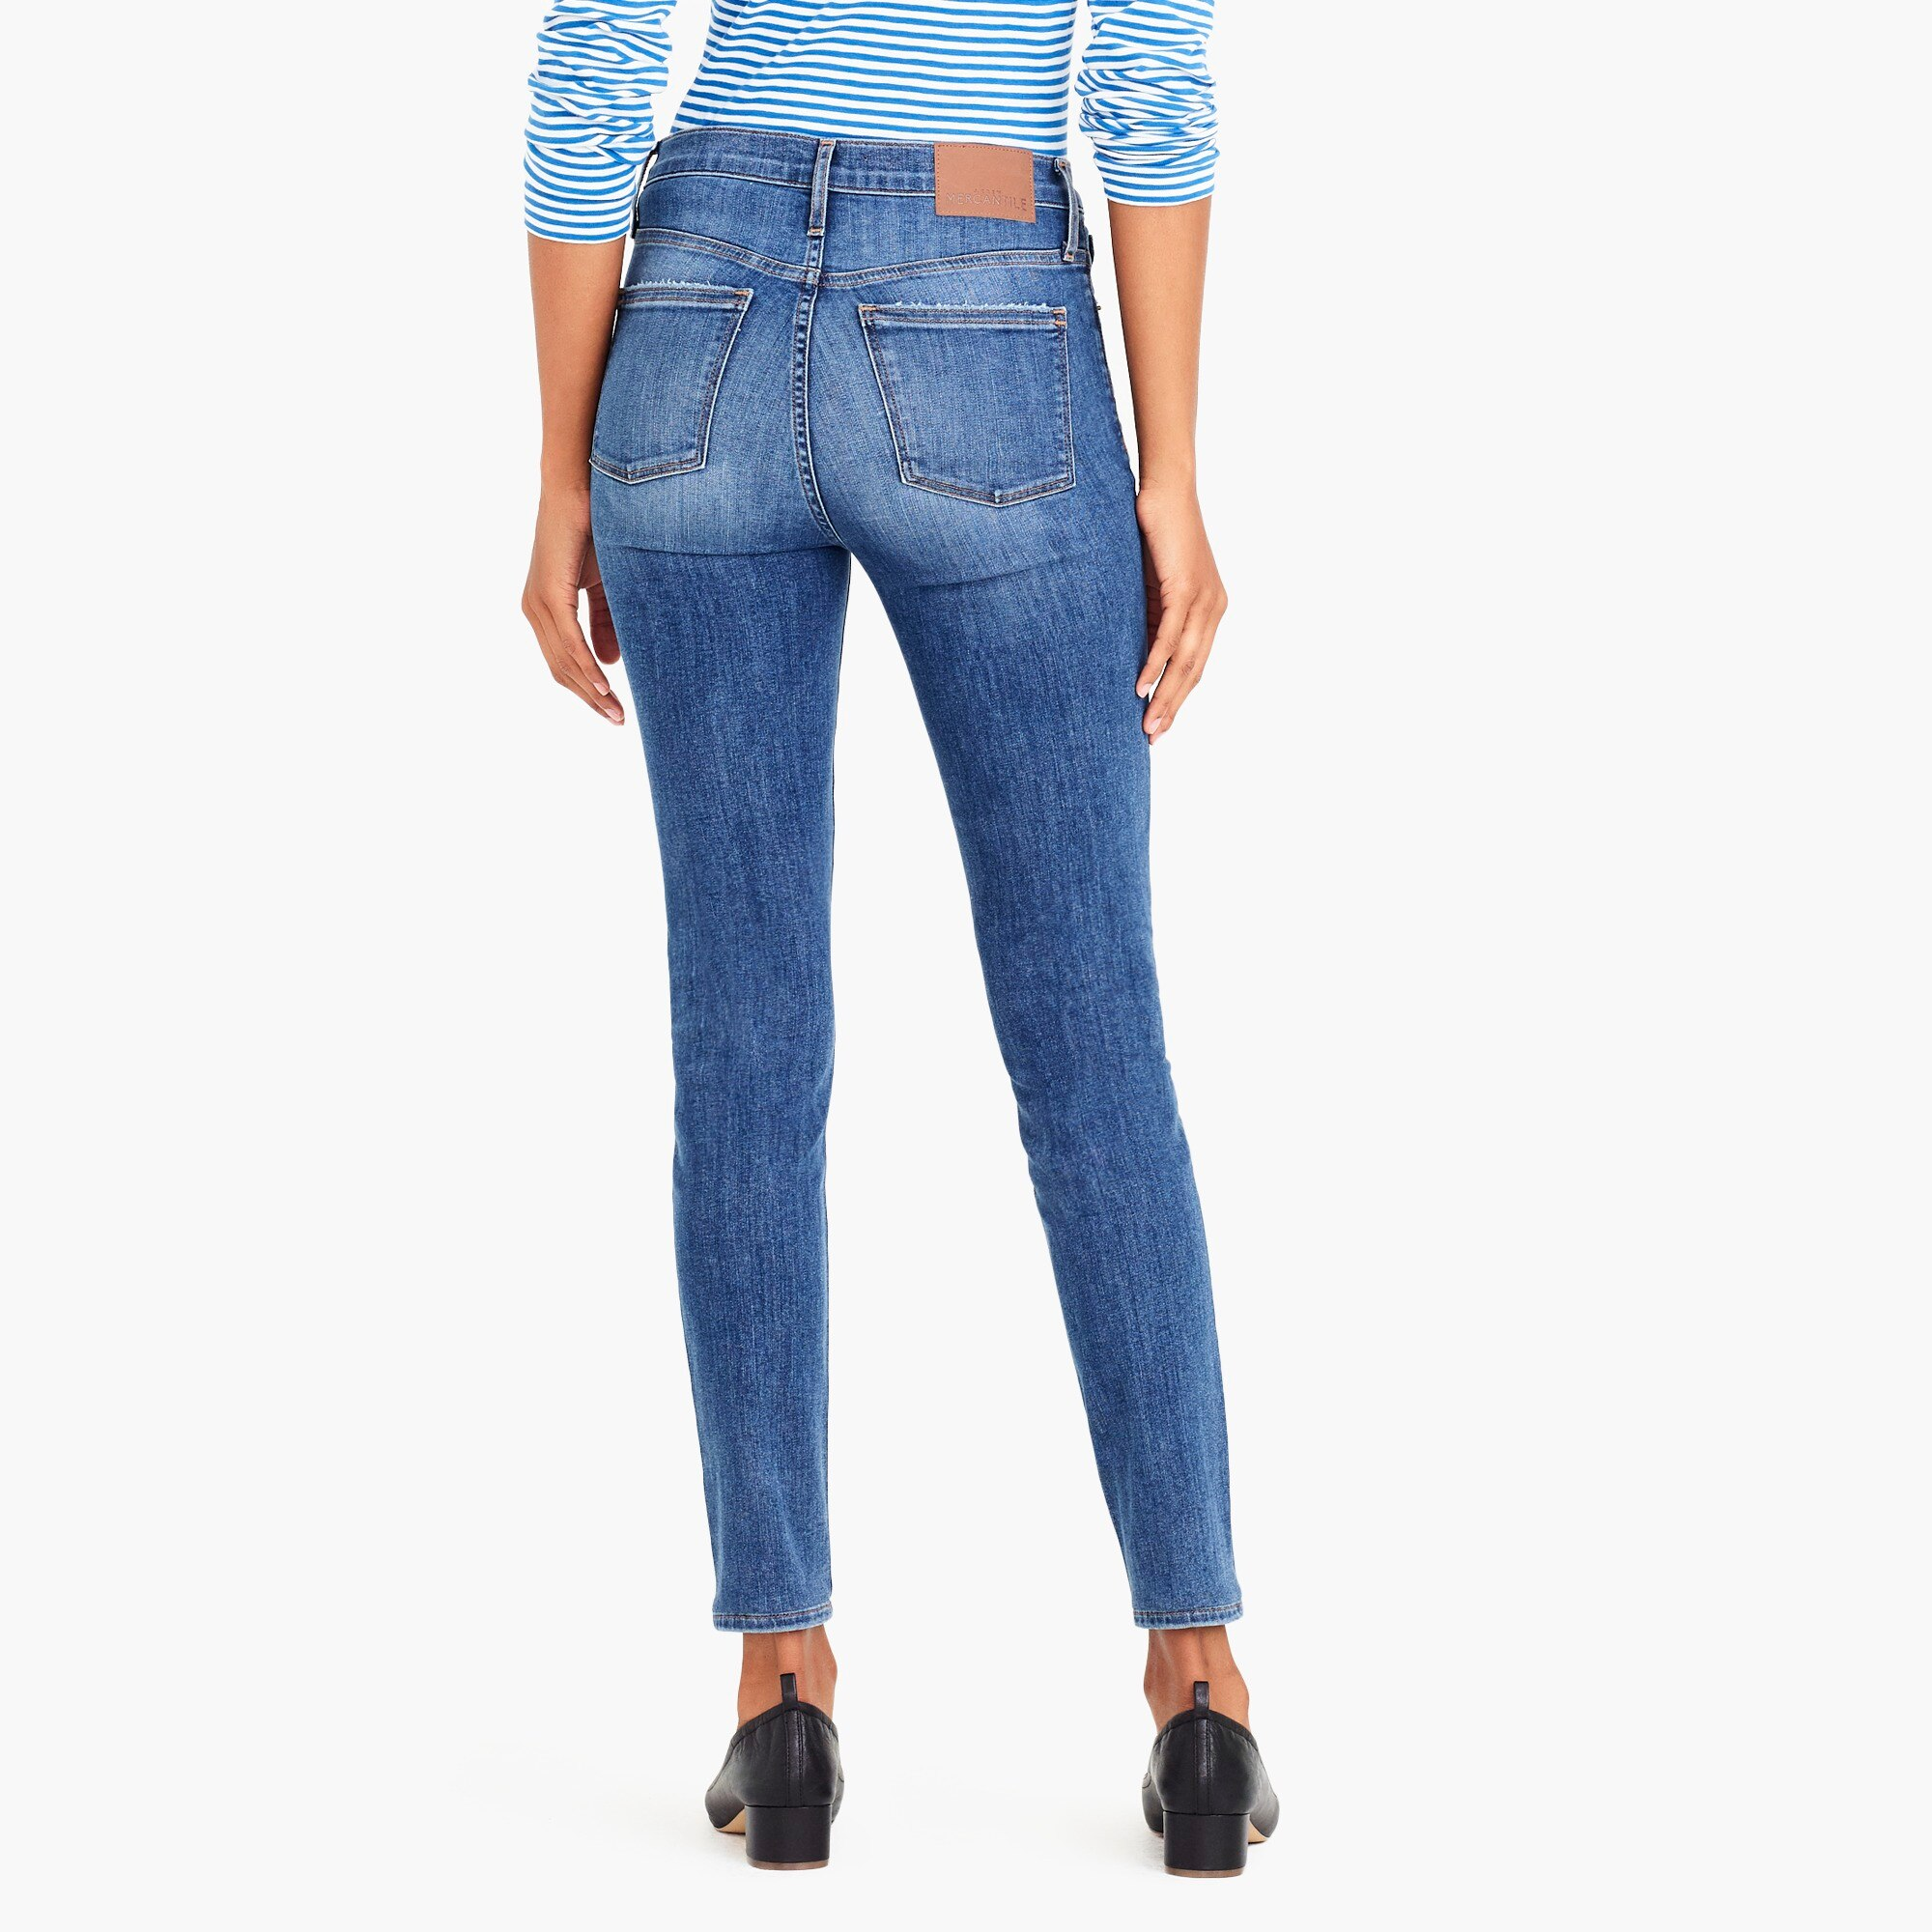 "10"" high-rise skinny jean with distressed details"